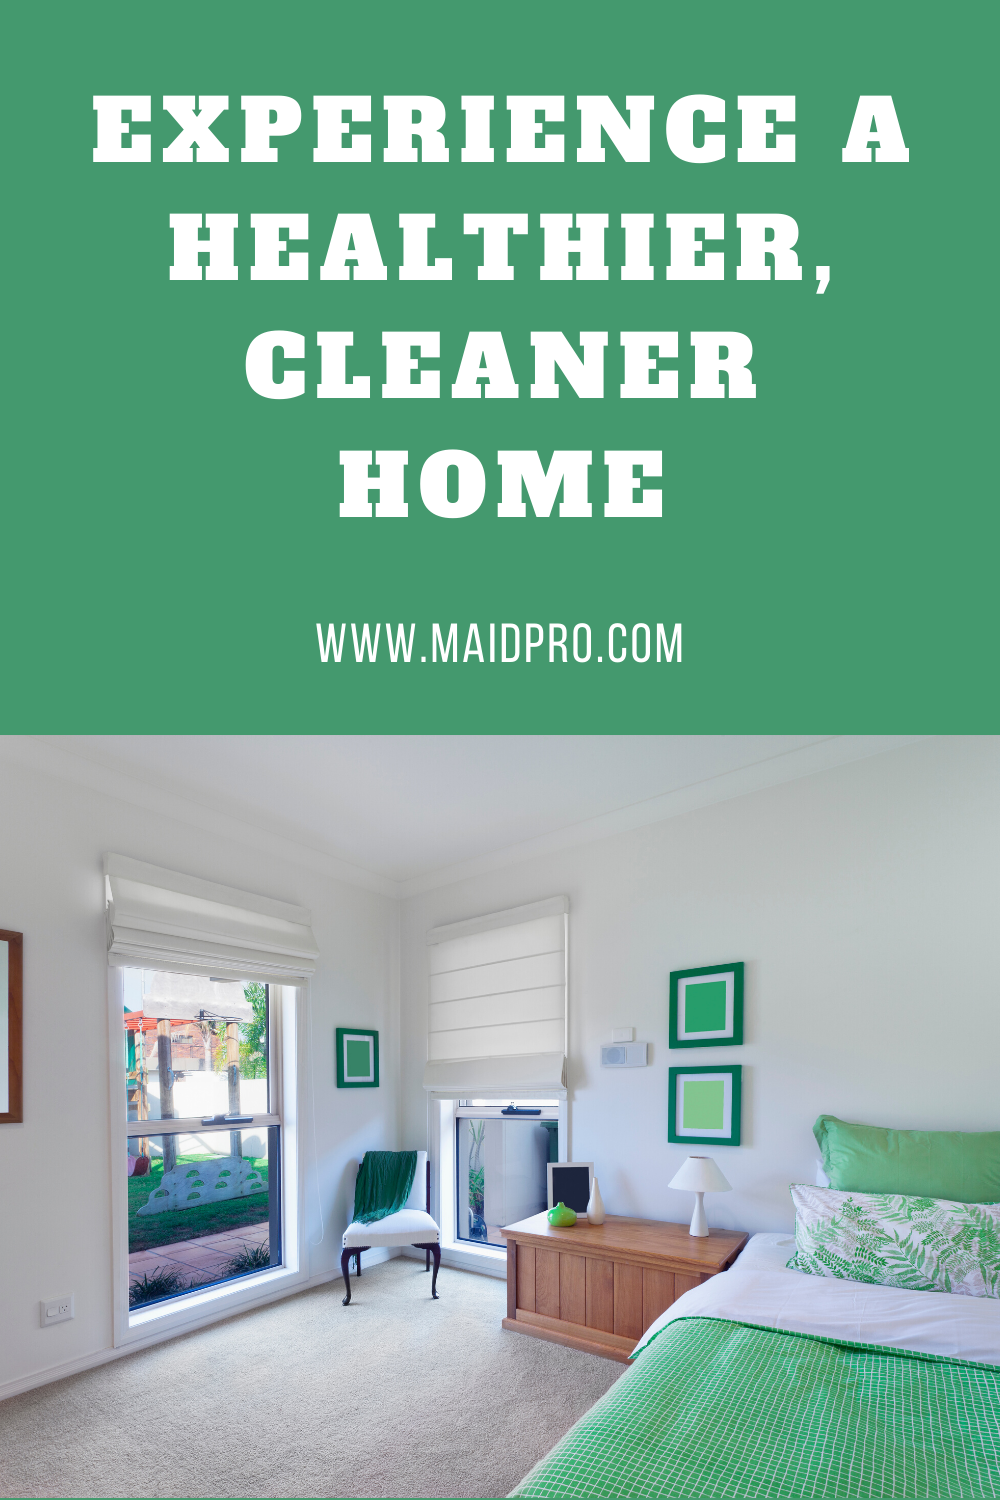 #cleanhome #cleaning #clean #cleanhouse #cleaningtips #homecleaning #home #cleaningmotivation #cleaninghacks #cleaningservice #cleaningservices #housecleaning  #cleaningproducts #residentialcleaning #deepcleaning #commercialcleaning #cleaningcompany #housekeeping #cleanhomehappyhome #officecleaning #mrshinchhome #homedecor #homesweethome #cleaningaccount #interior